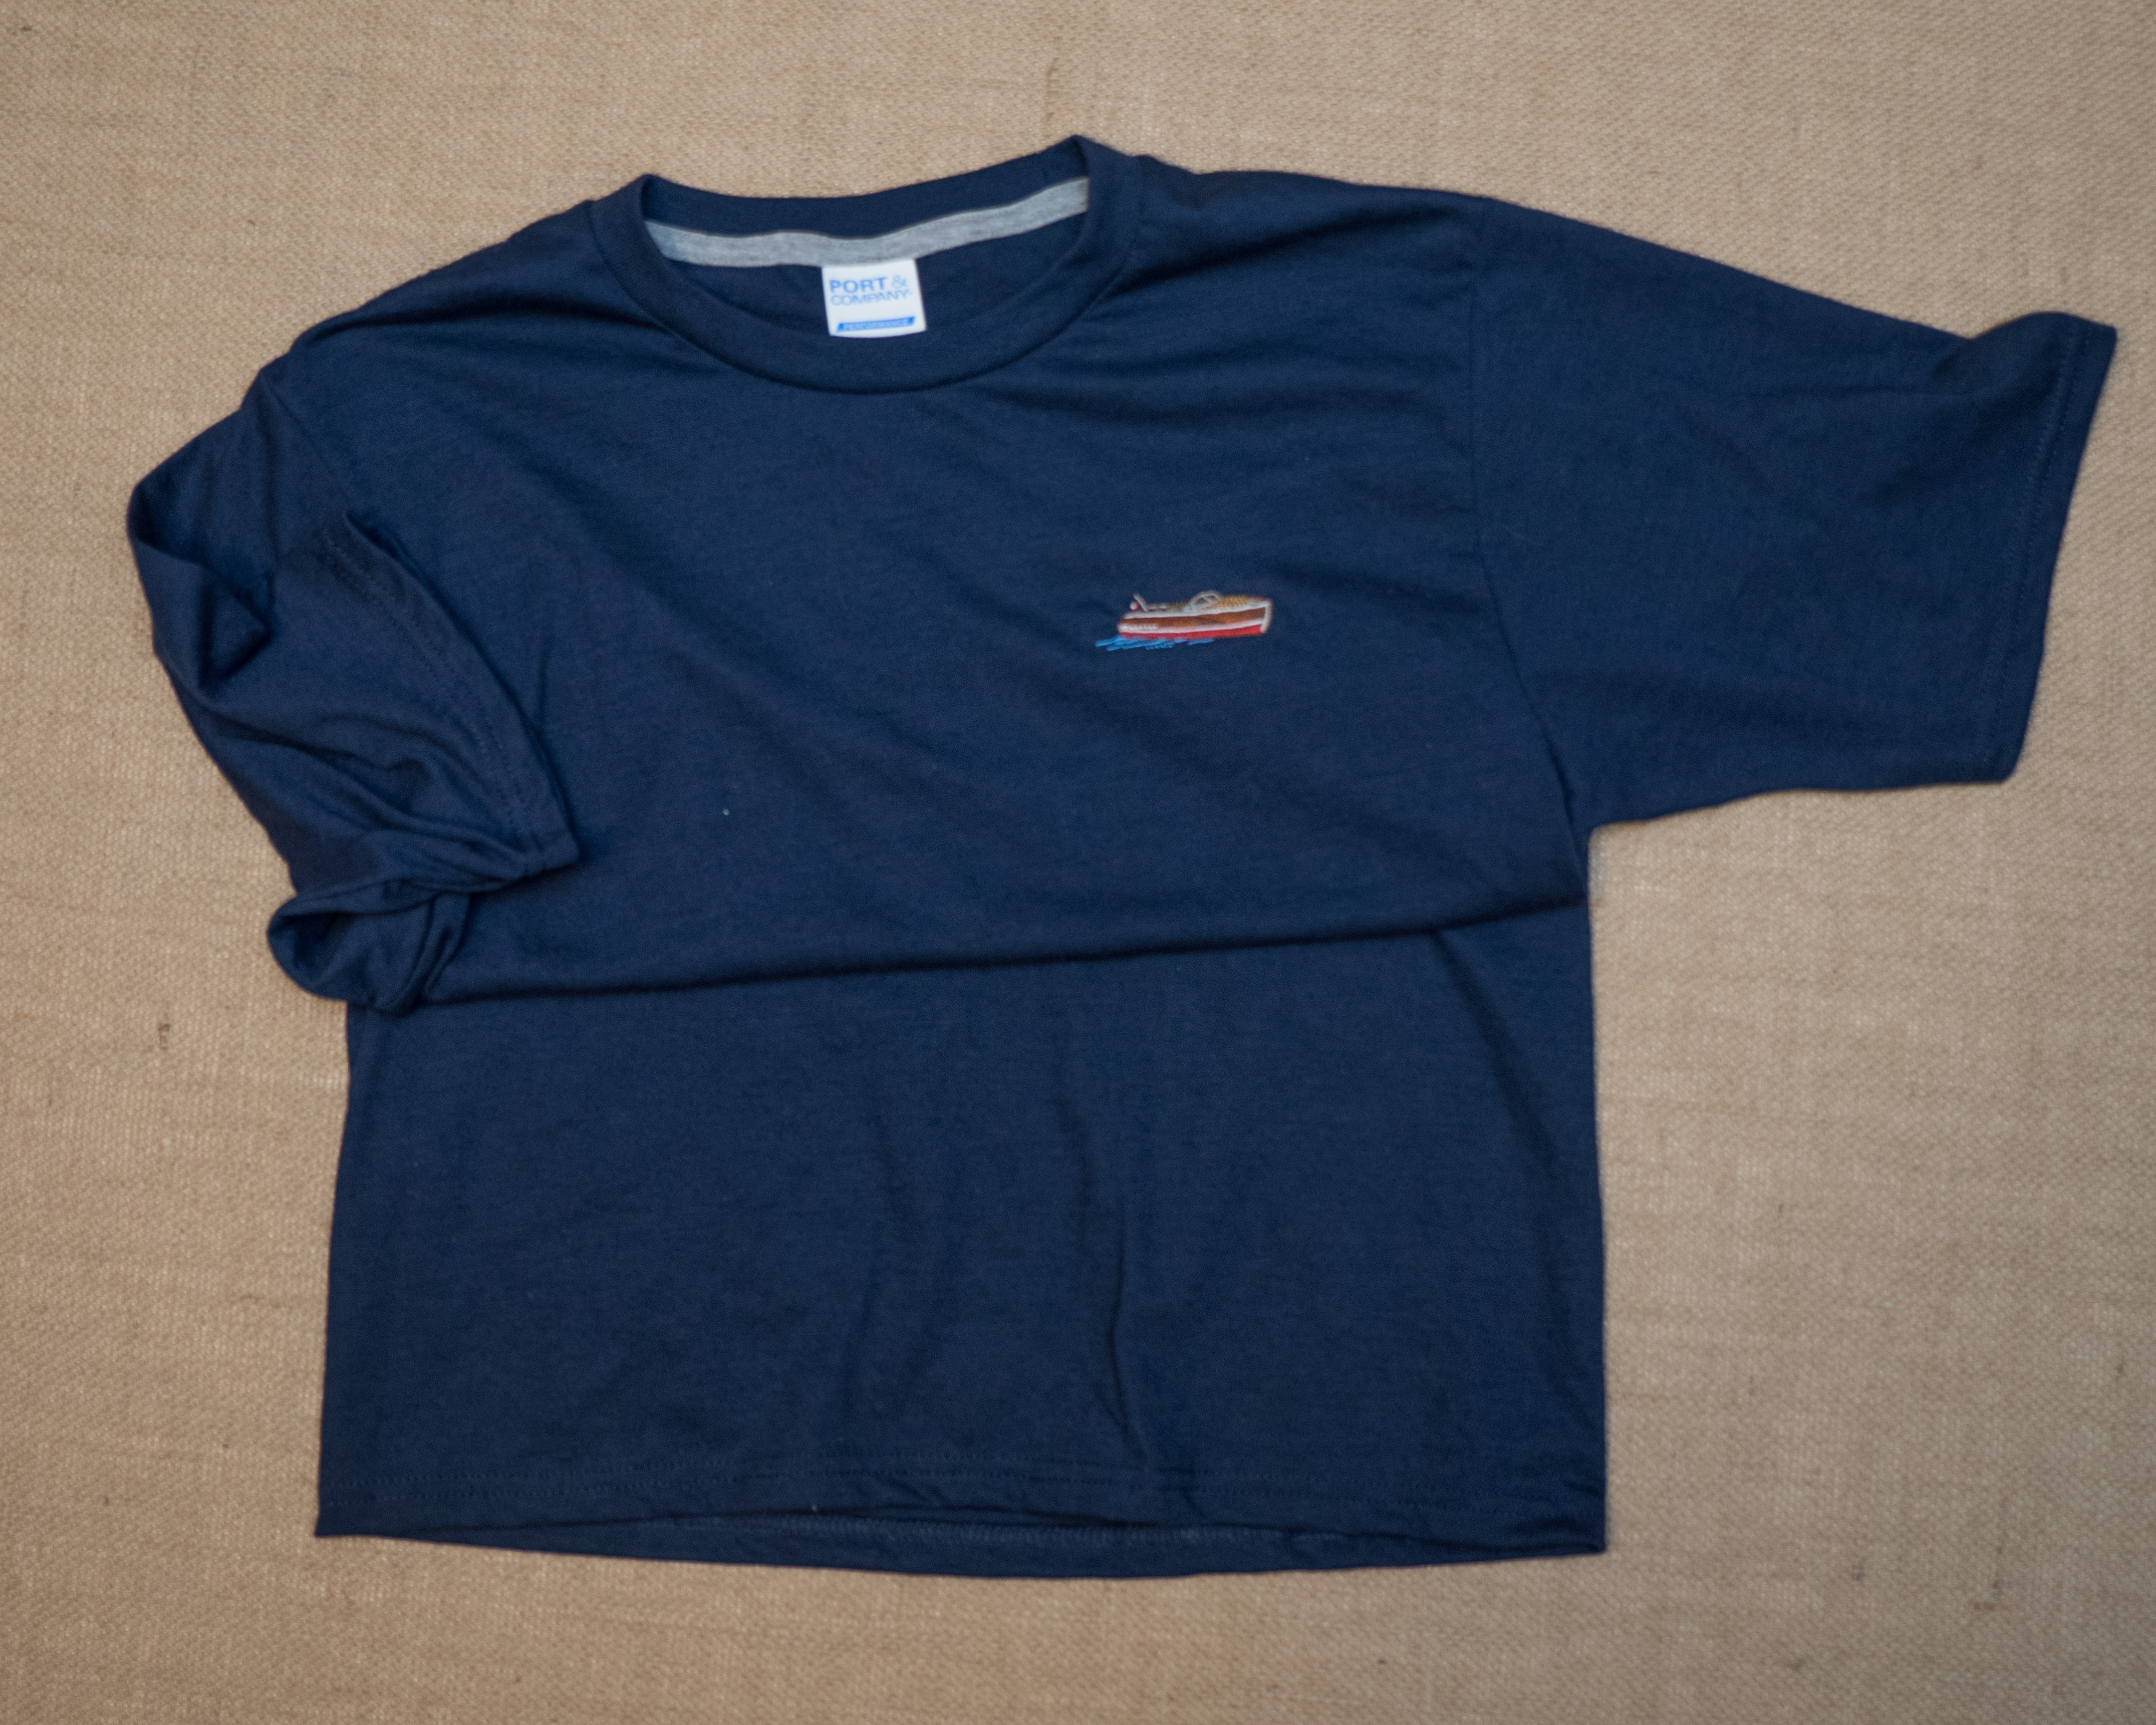 Men's embroidered T-shirt navy